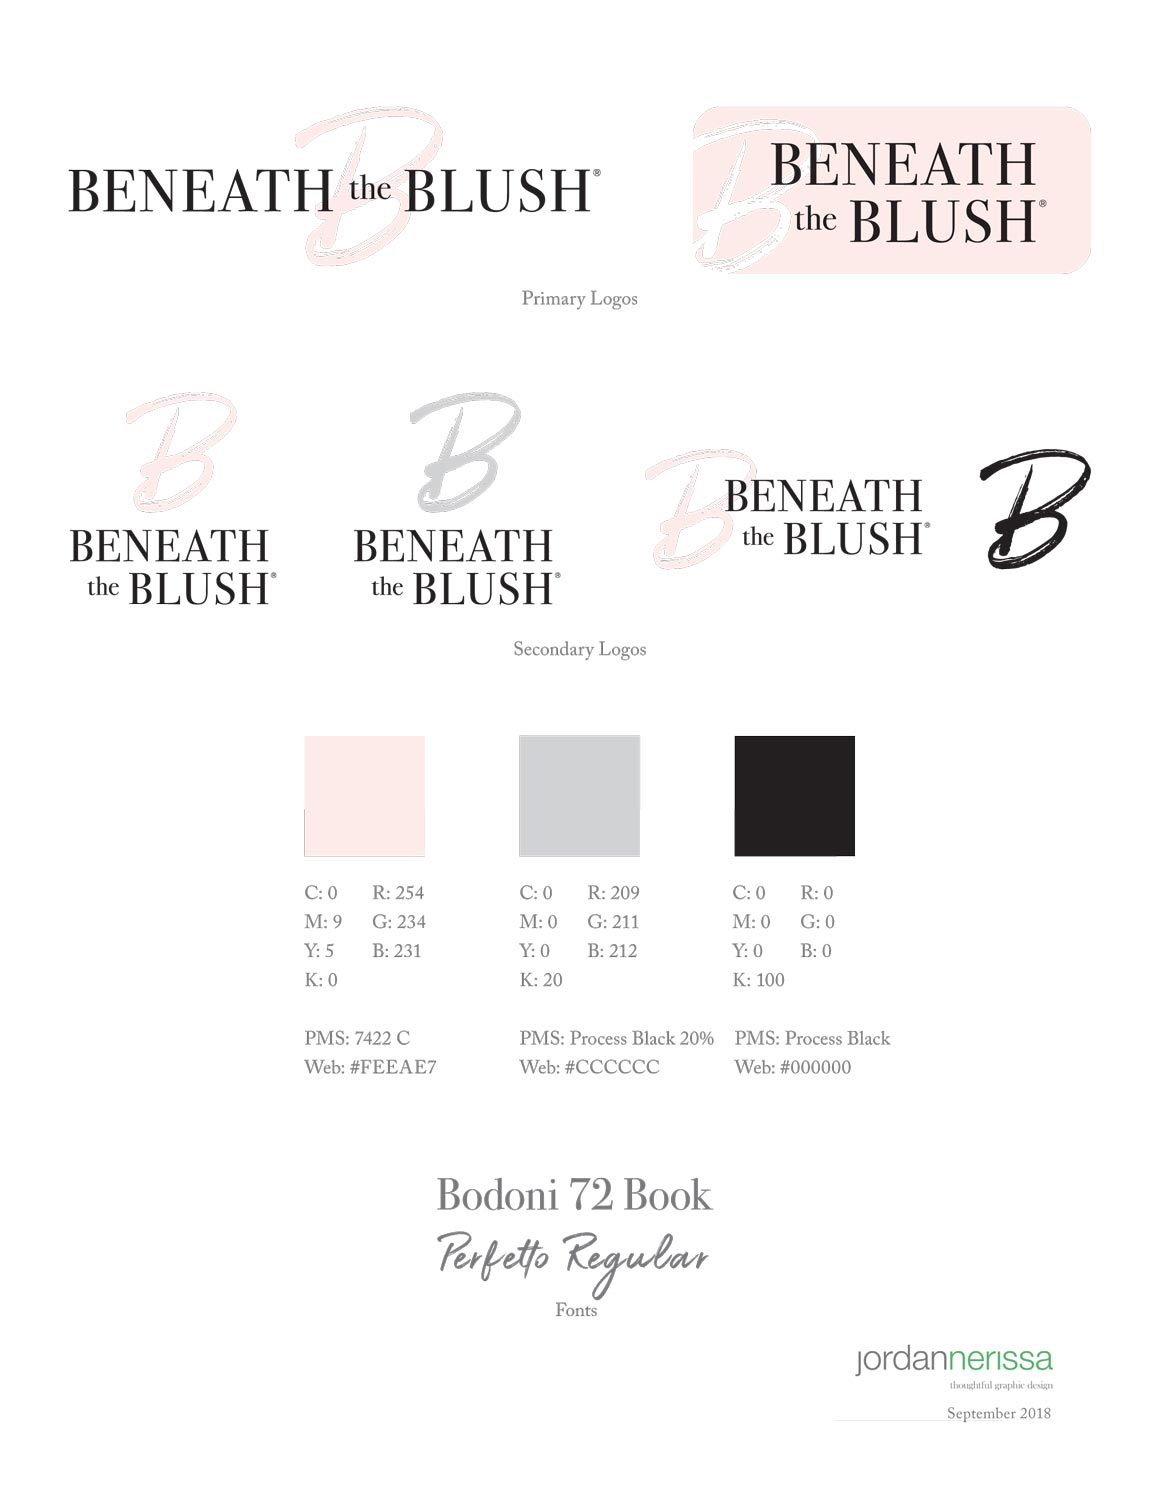 beneath the blush brand guidelines